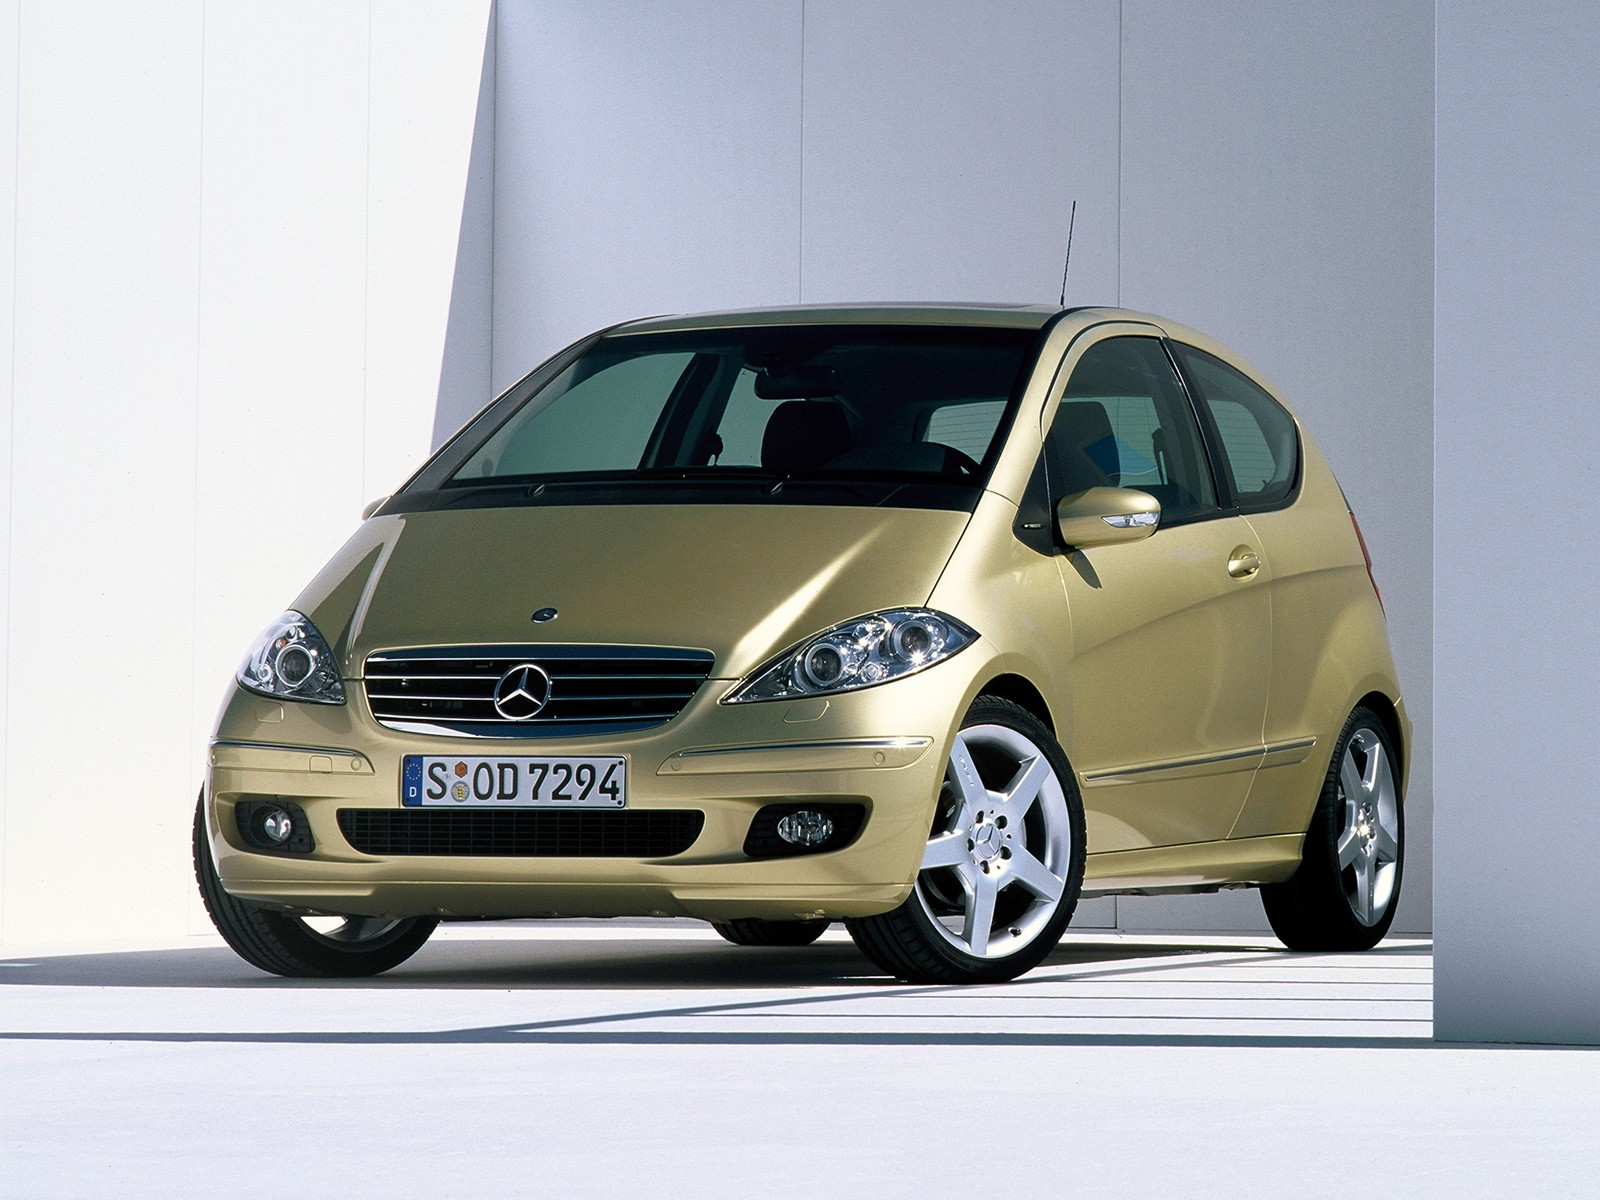 Mercedes-Benz A-klasse II (W169) 2004 - 2007 Hatchback 3 door #1